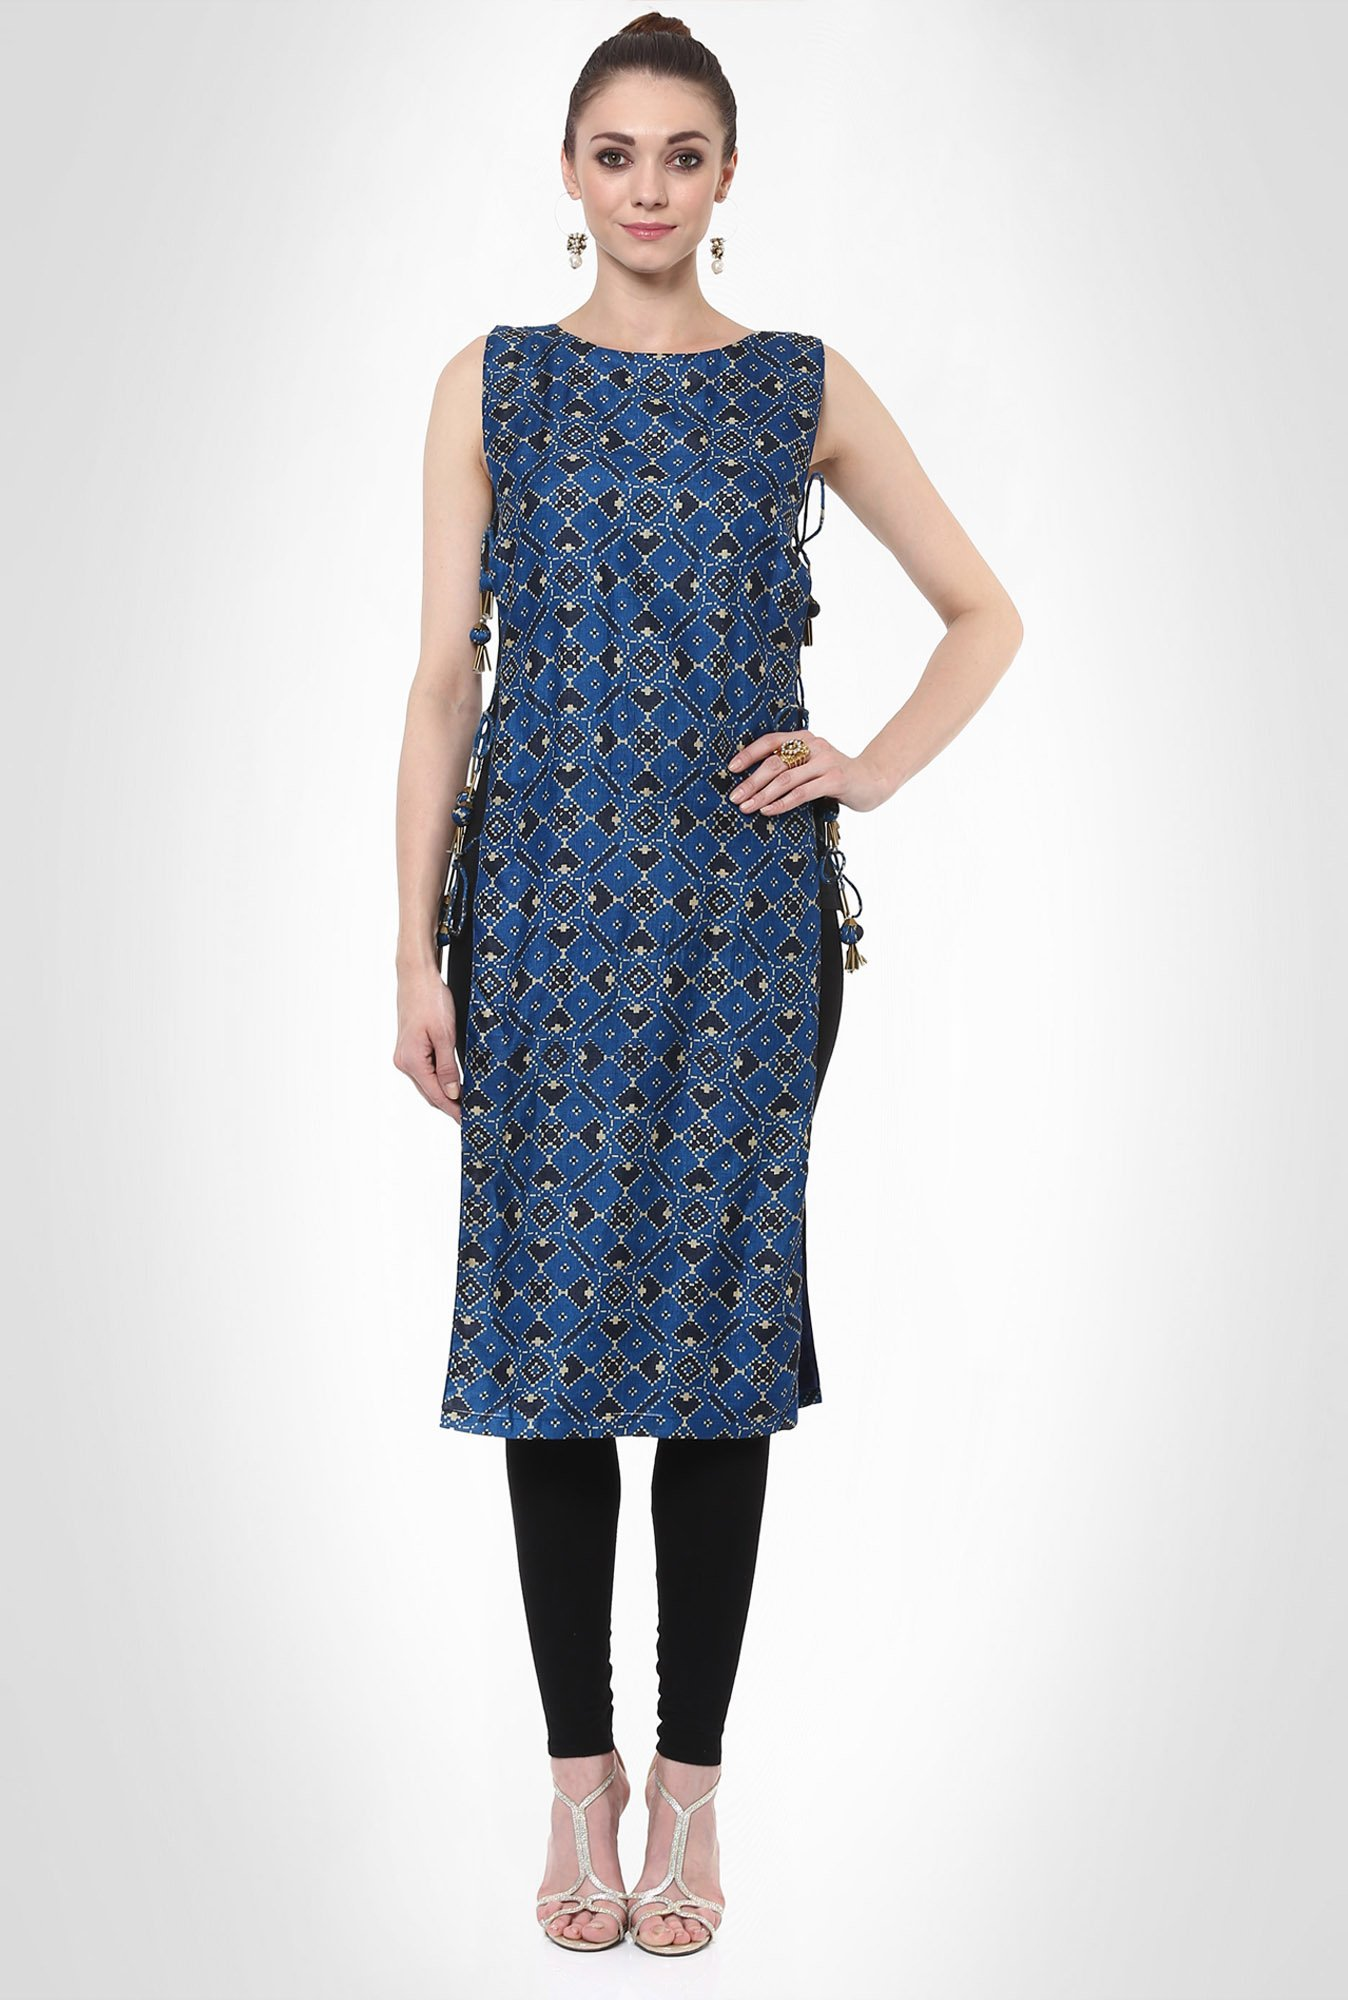 Avisha The Right Cut Designer Wear Blue Kurti by Kimaya